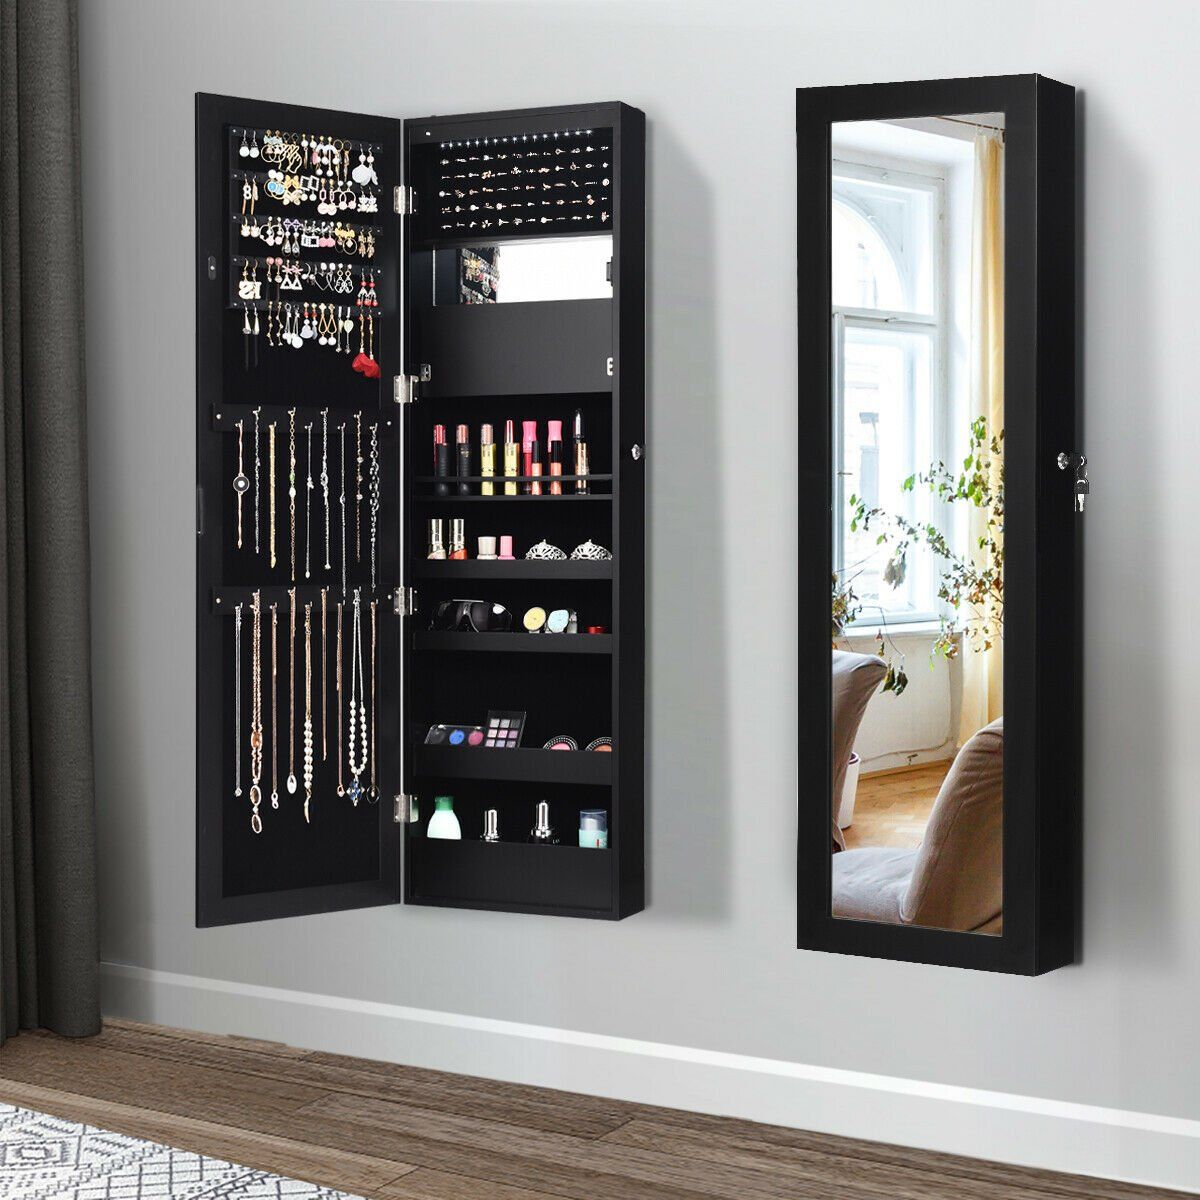 Gymax Wall Door Mounted Lockable Jewelry Cabinet Armoire Organizer W Led Walmart Com Wall Mounted Jewelry Armoire Jewelry Cabinet Mirror Jewellery Cabinet